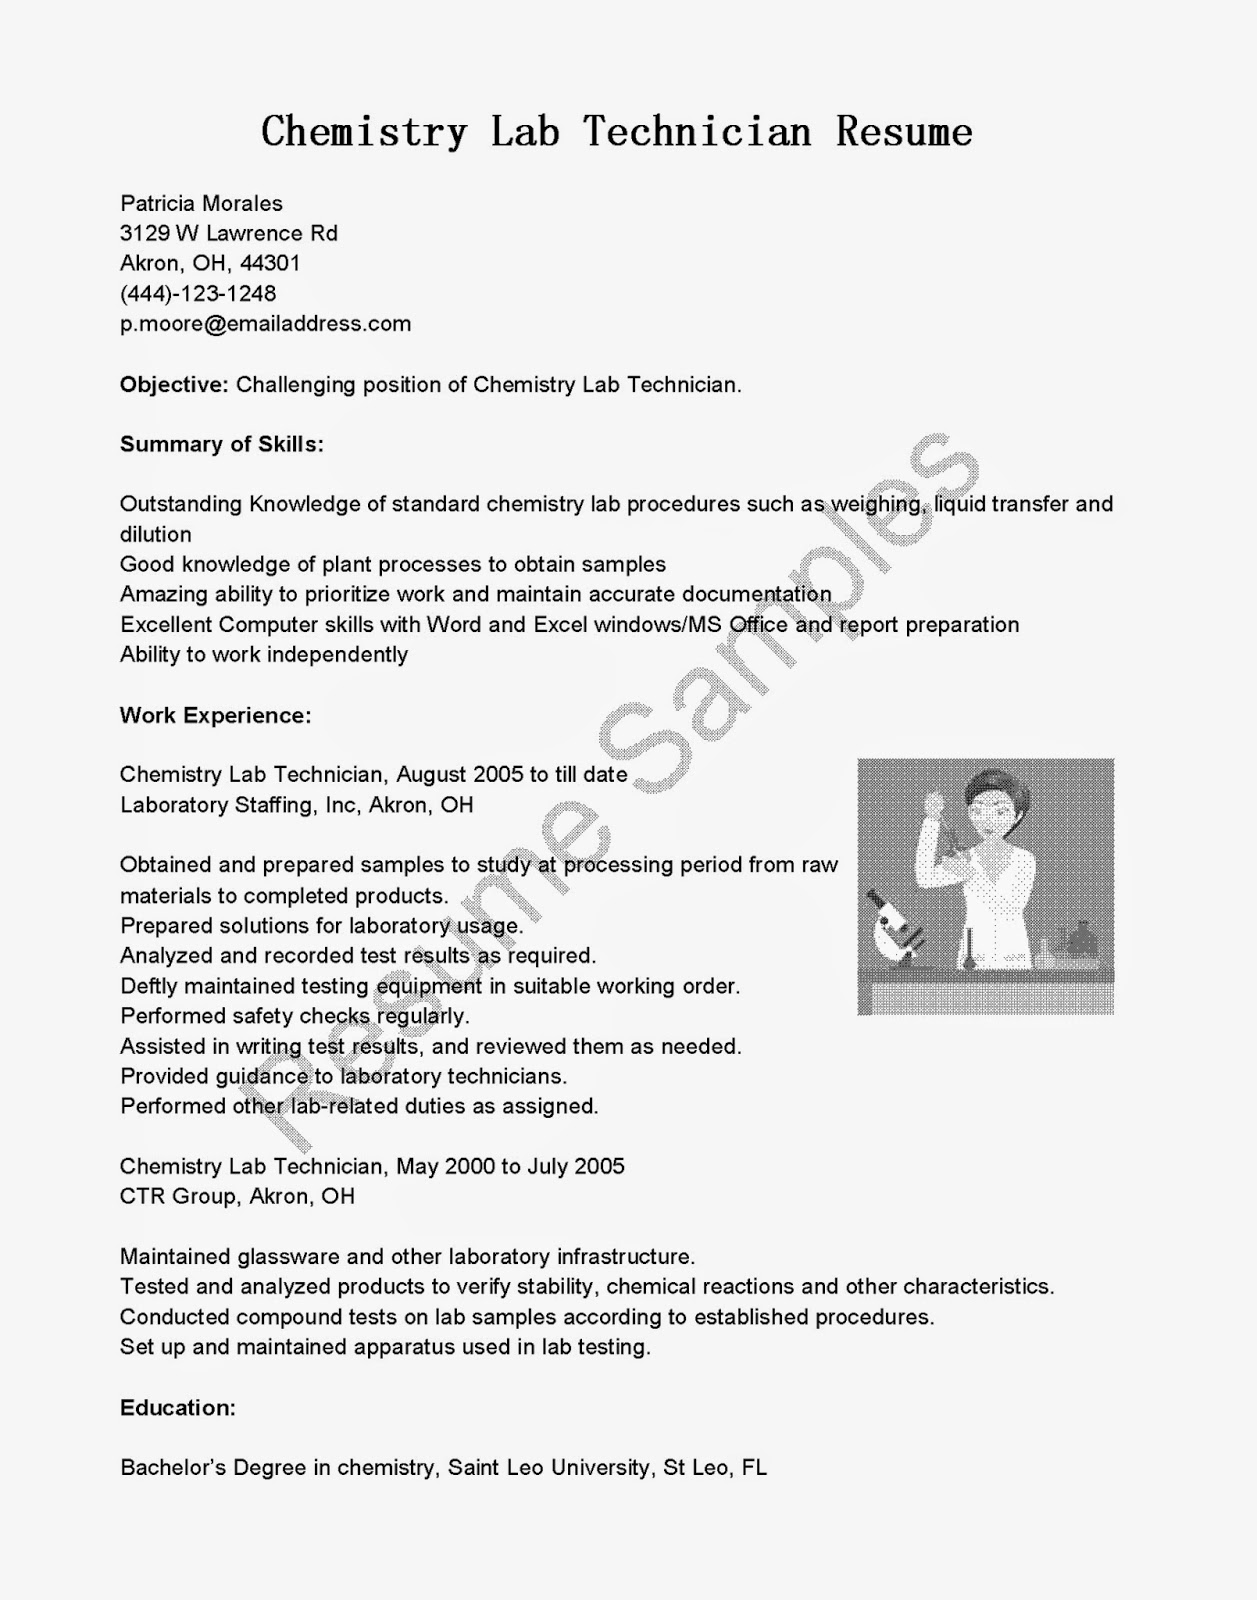 Resume Samples Chemistry Lab Technician Resume Sample